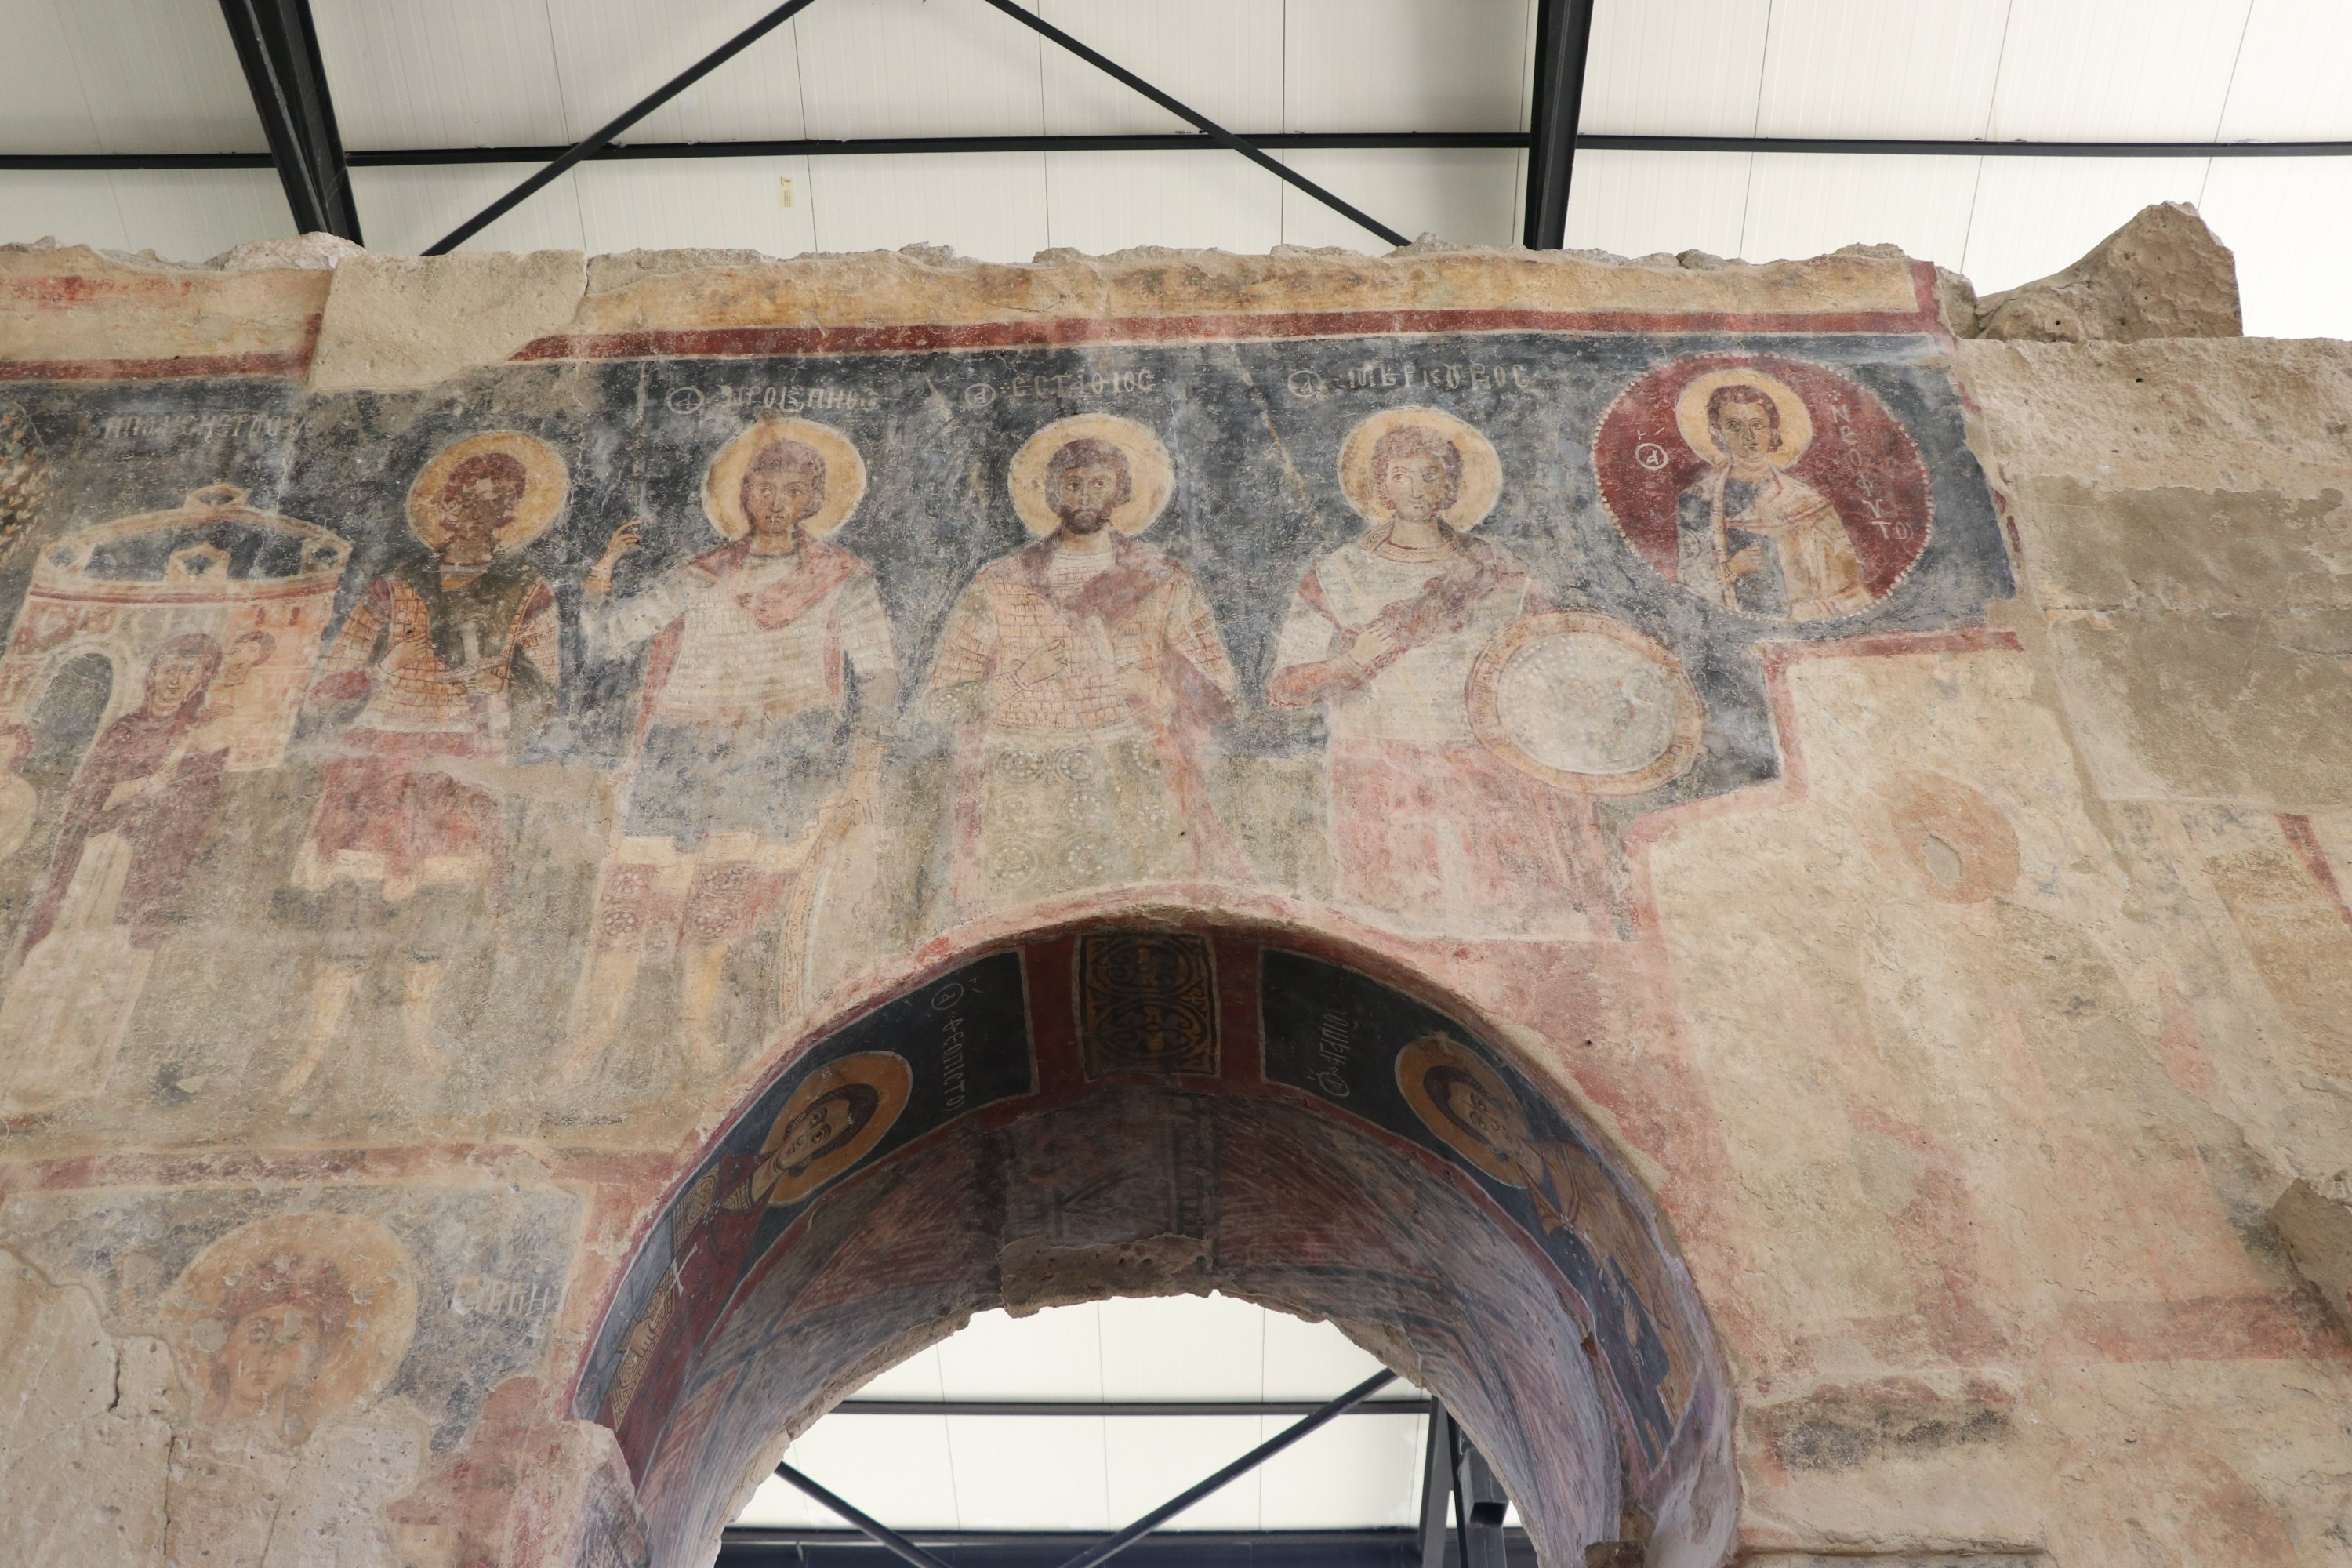 The Andaval archaeological site features murals depicting the life of Jesus on its walls. (AA PHOTO)